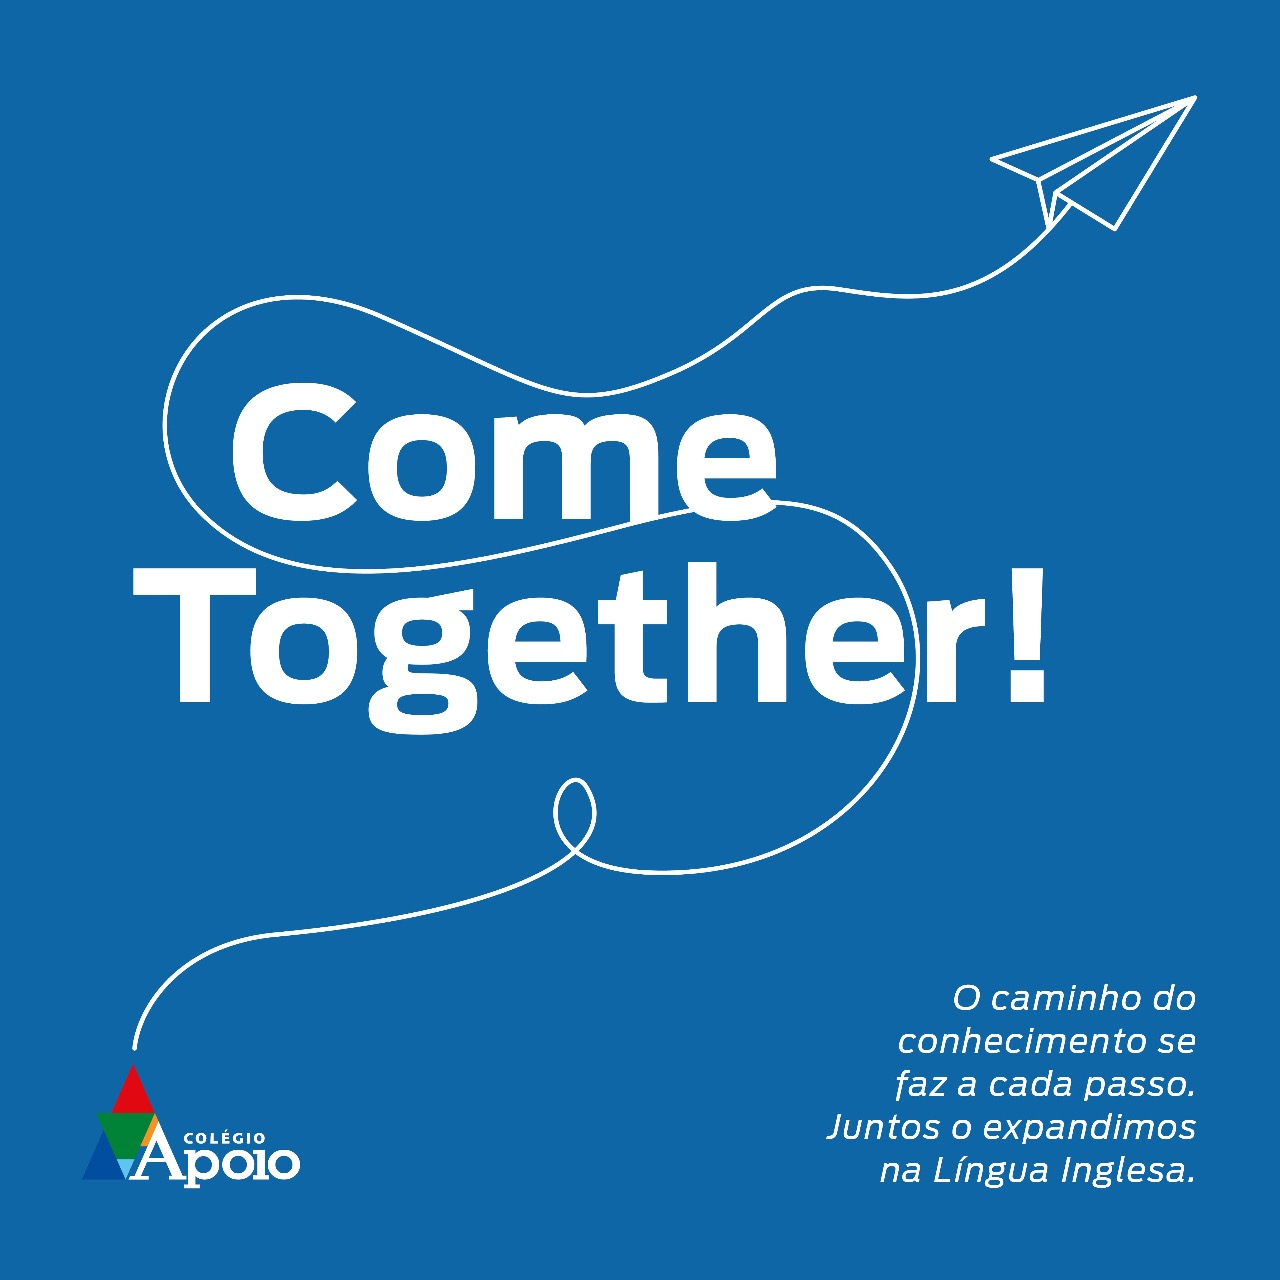 Come Together!